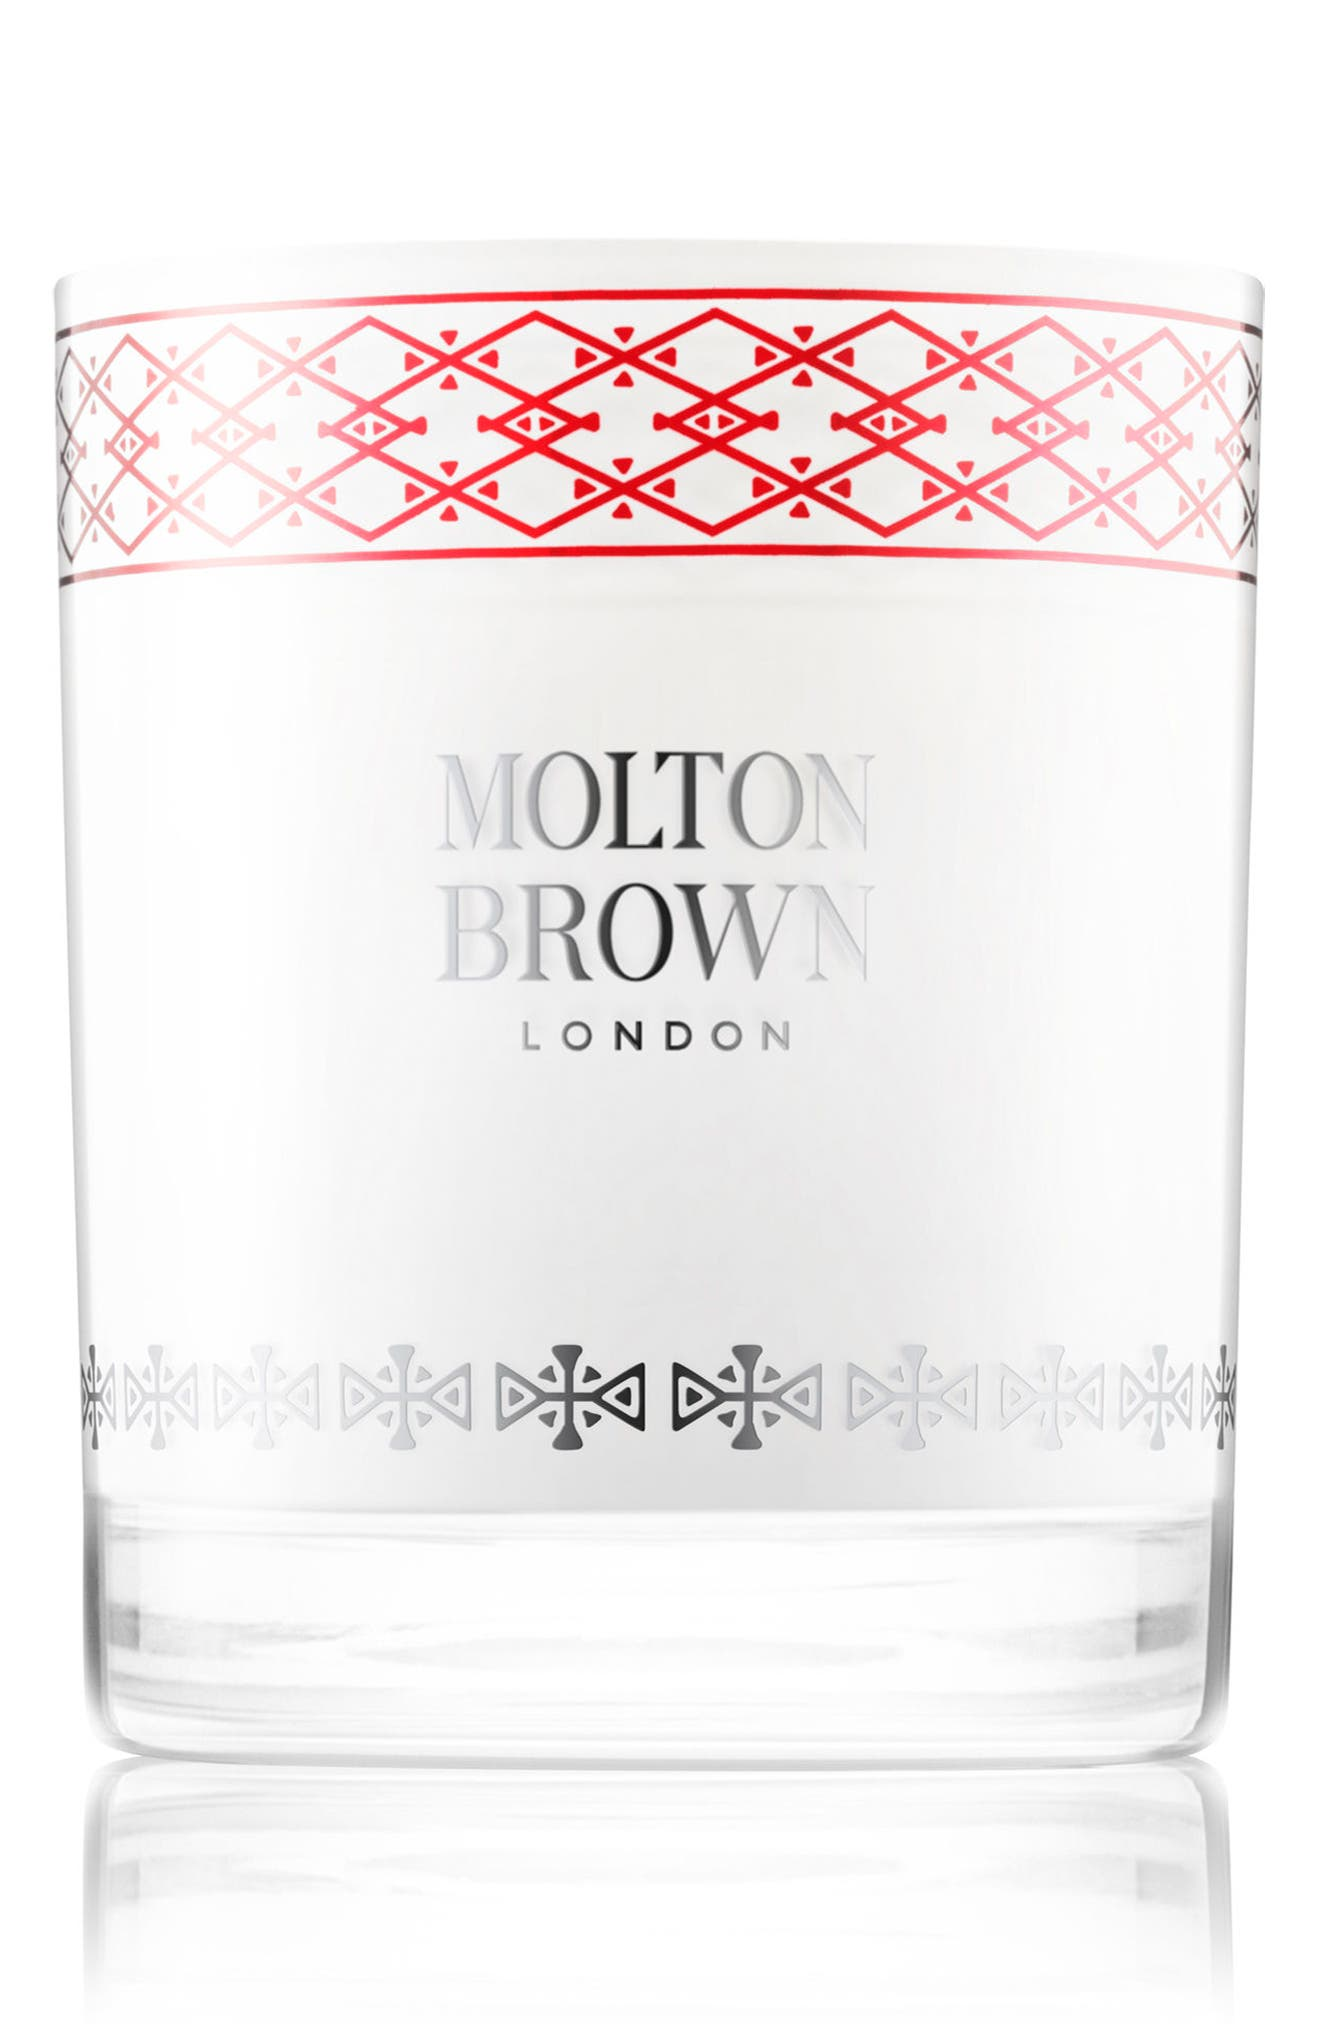 MOLTON BROWN London Single Wick Candle (Limited Edition)